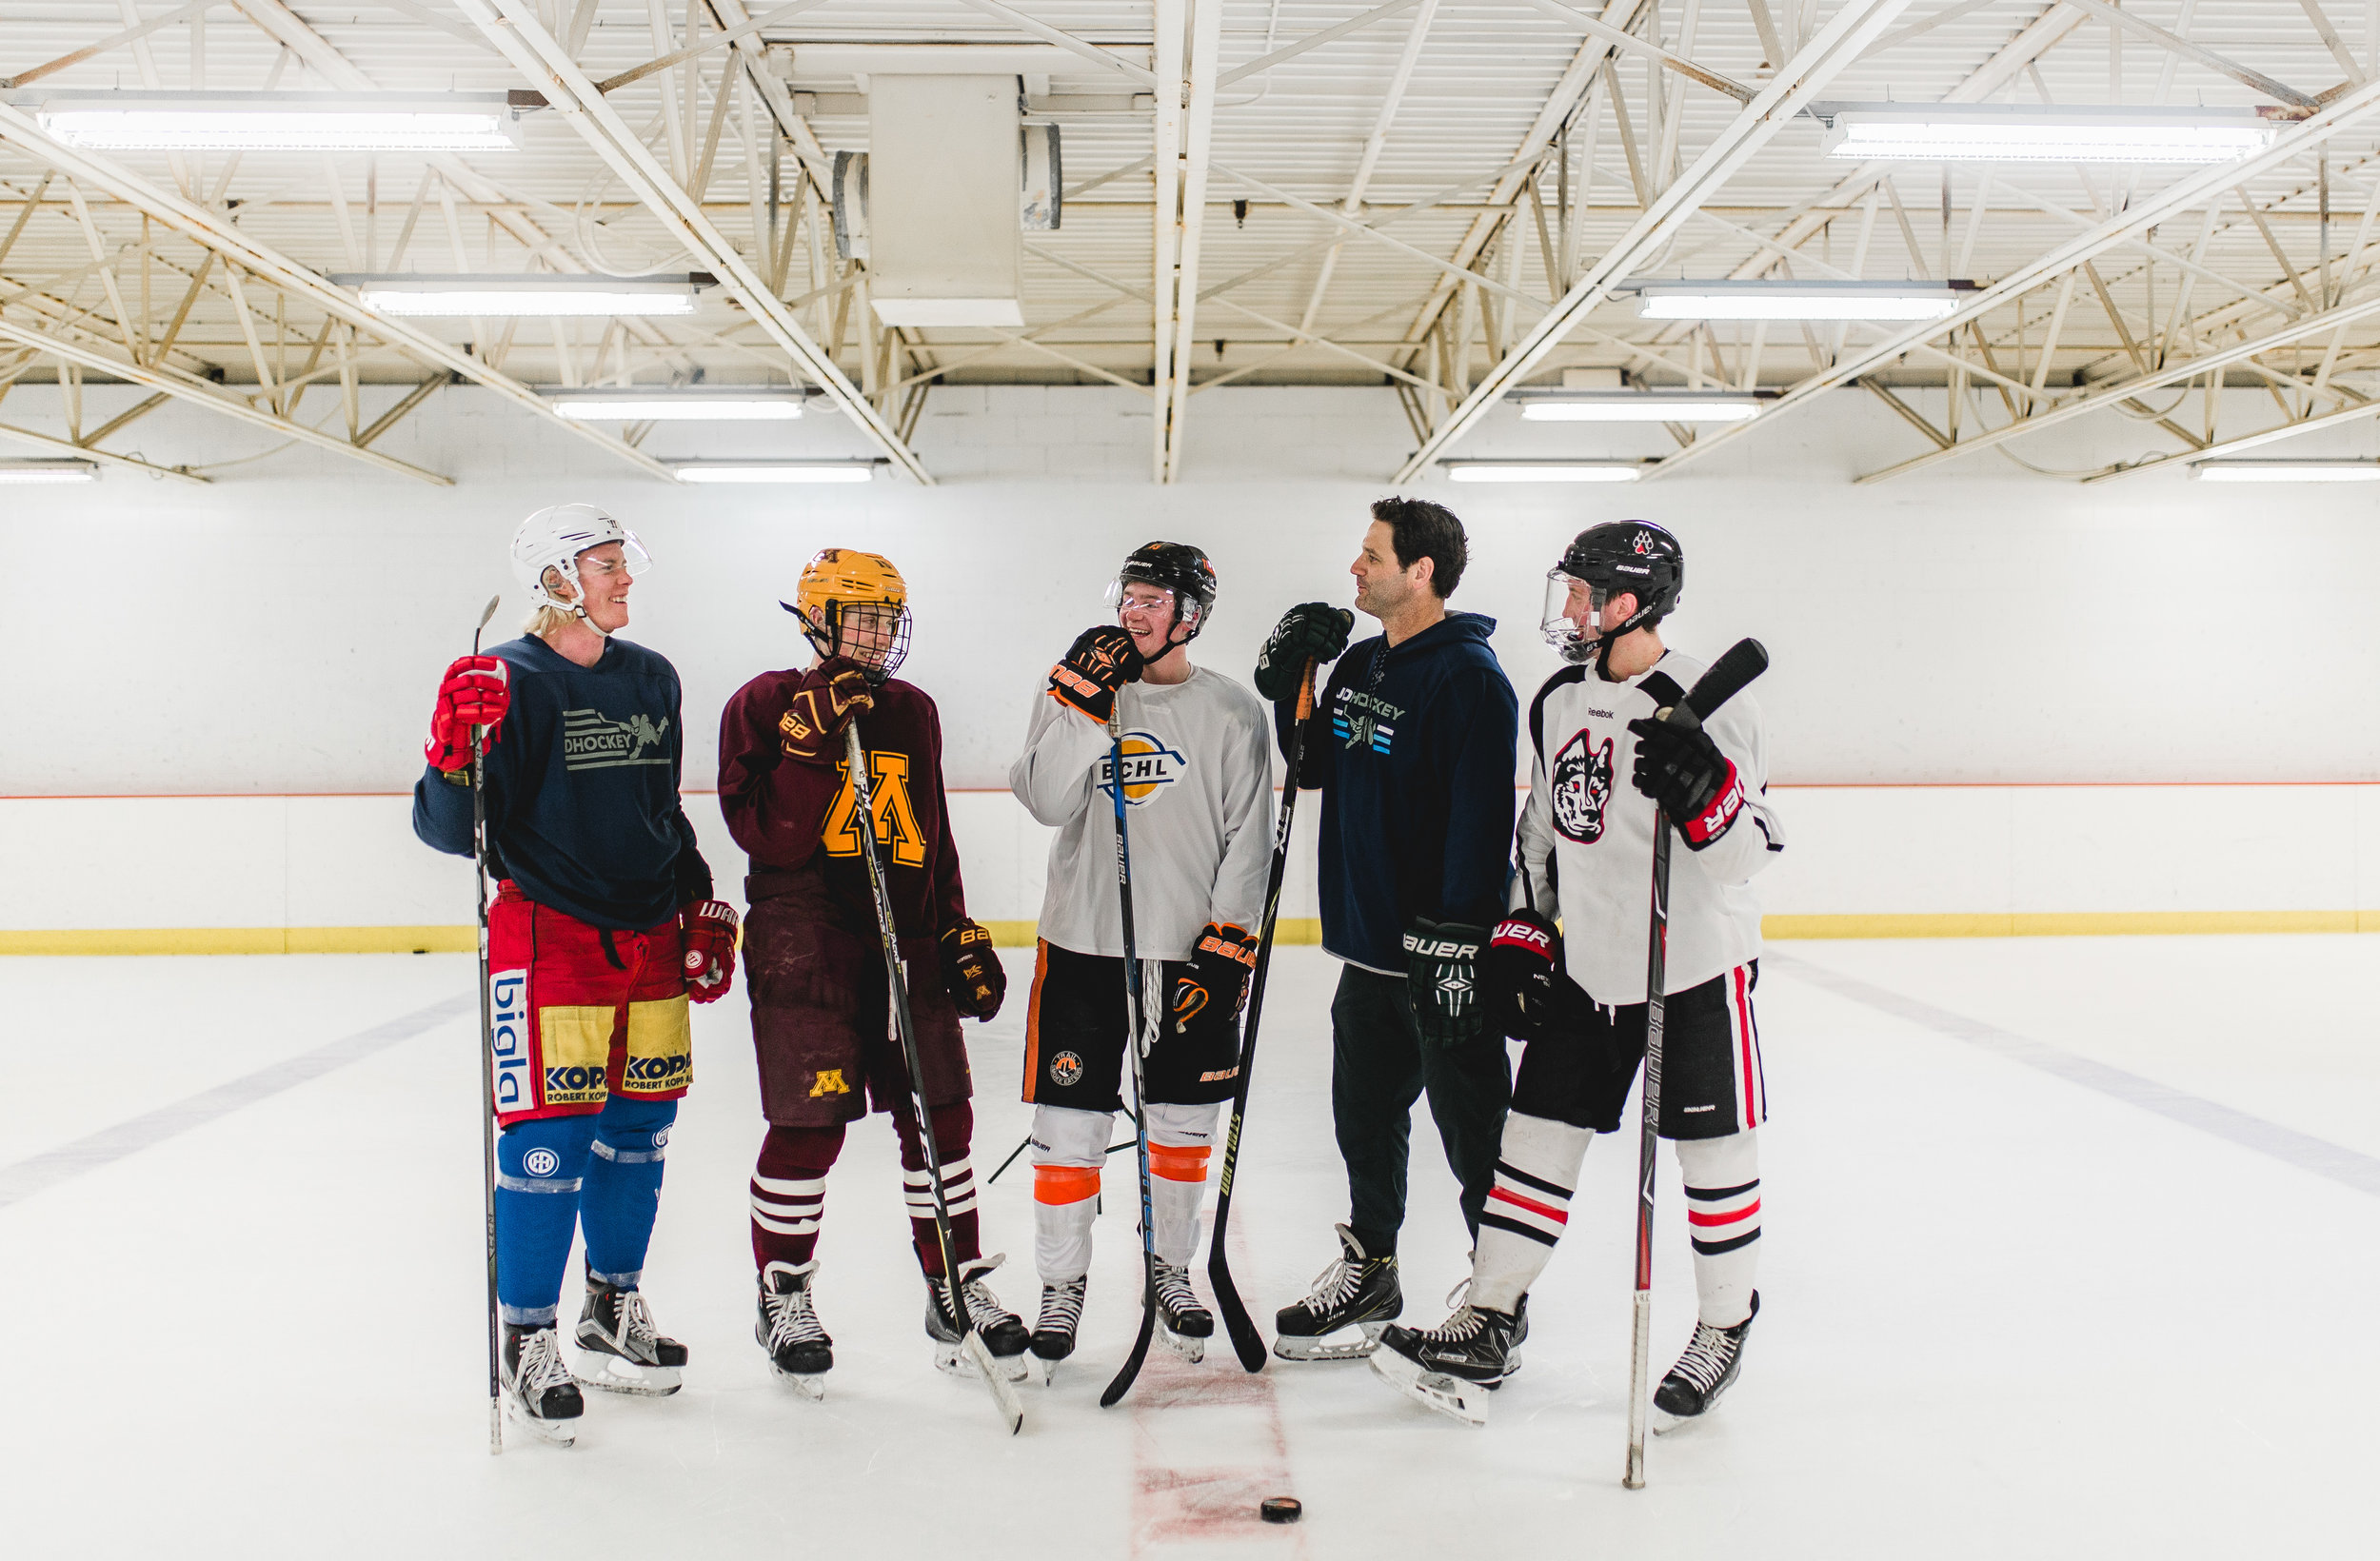 Minneapolis Hockey Leagues 3-on-3